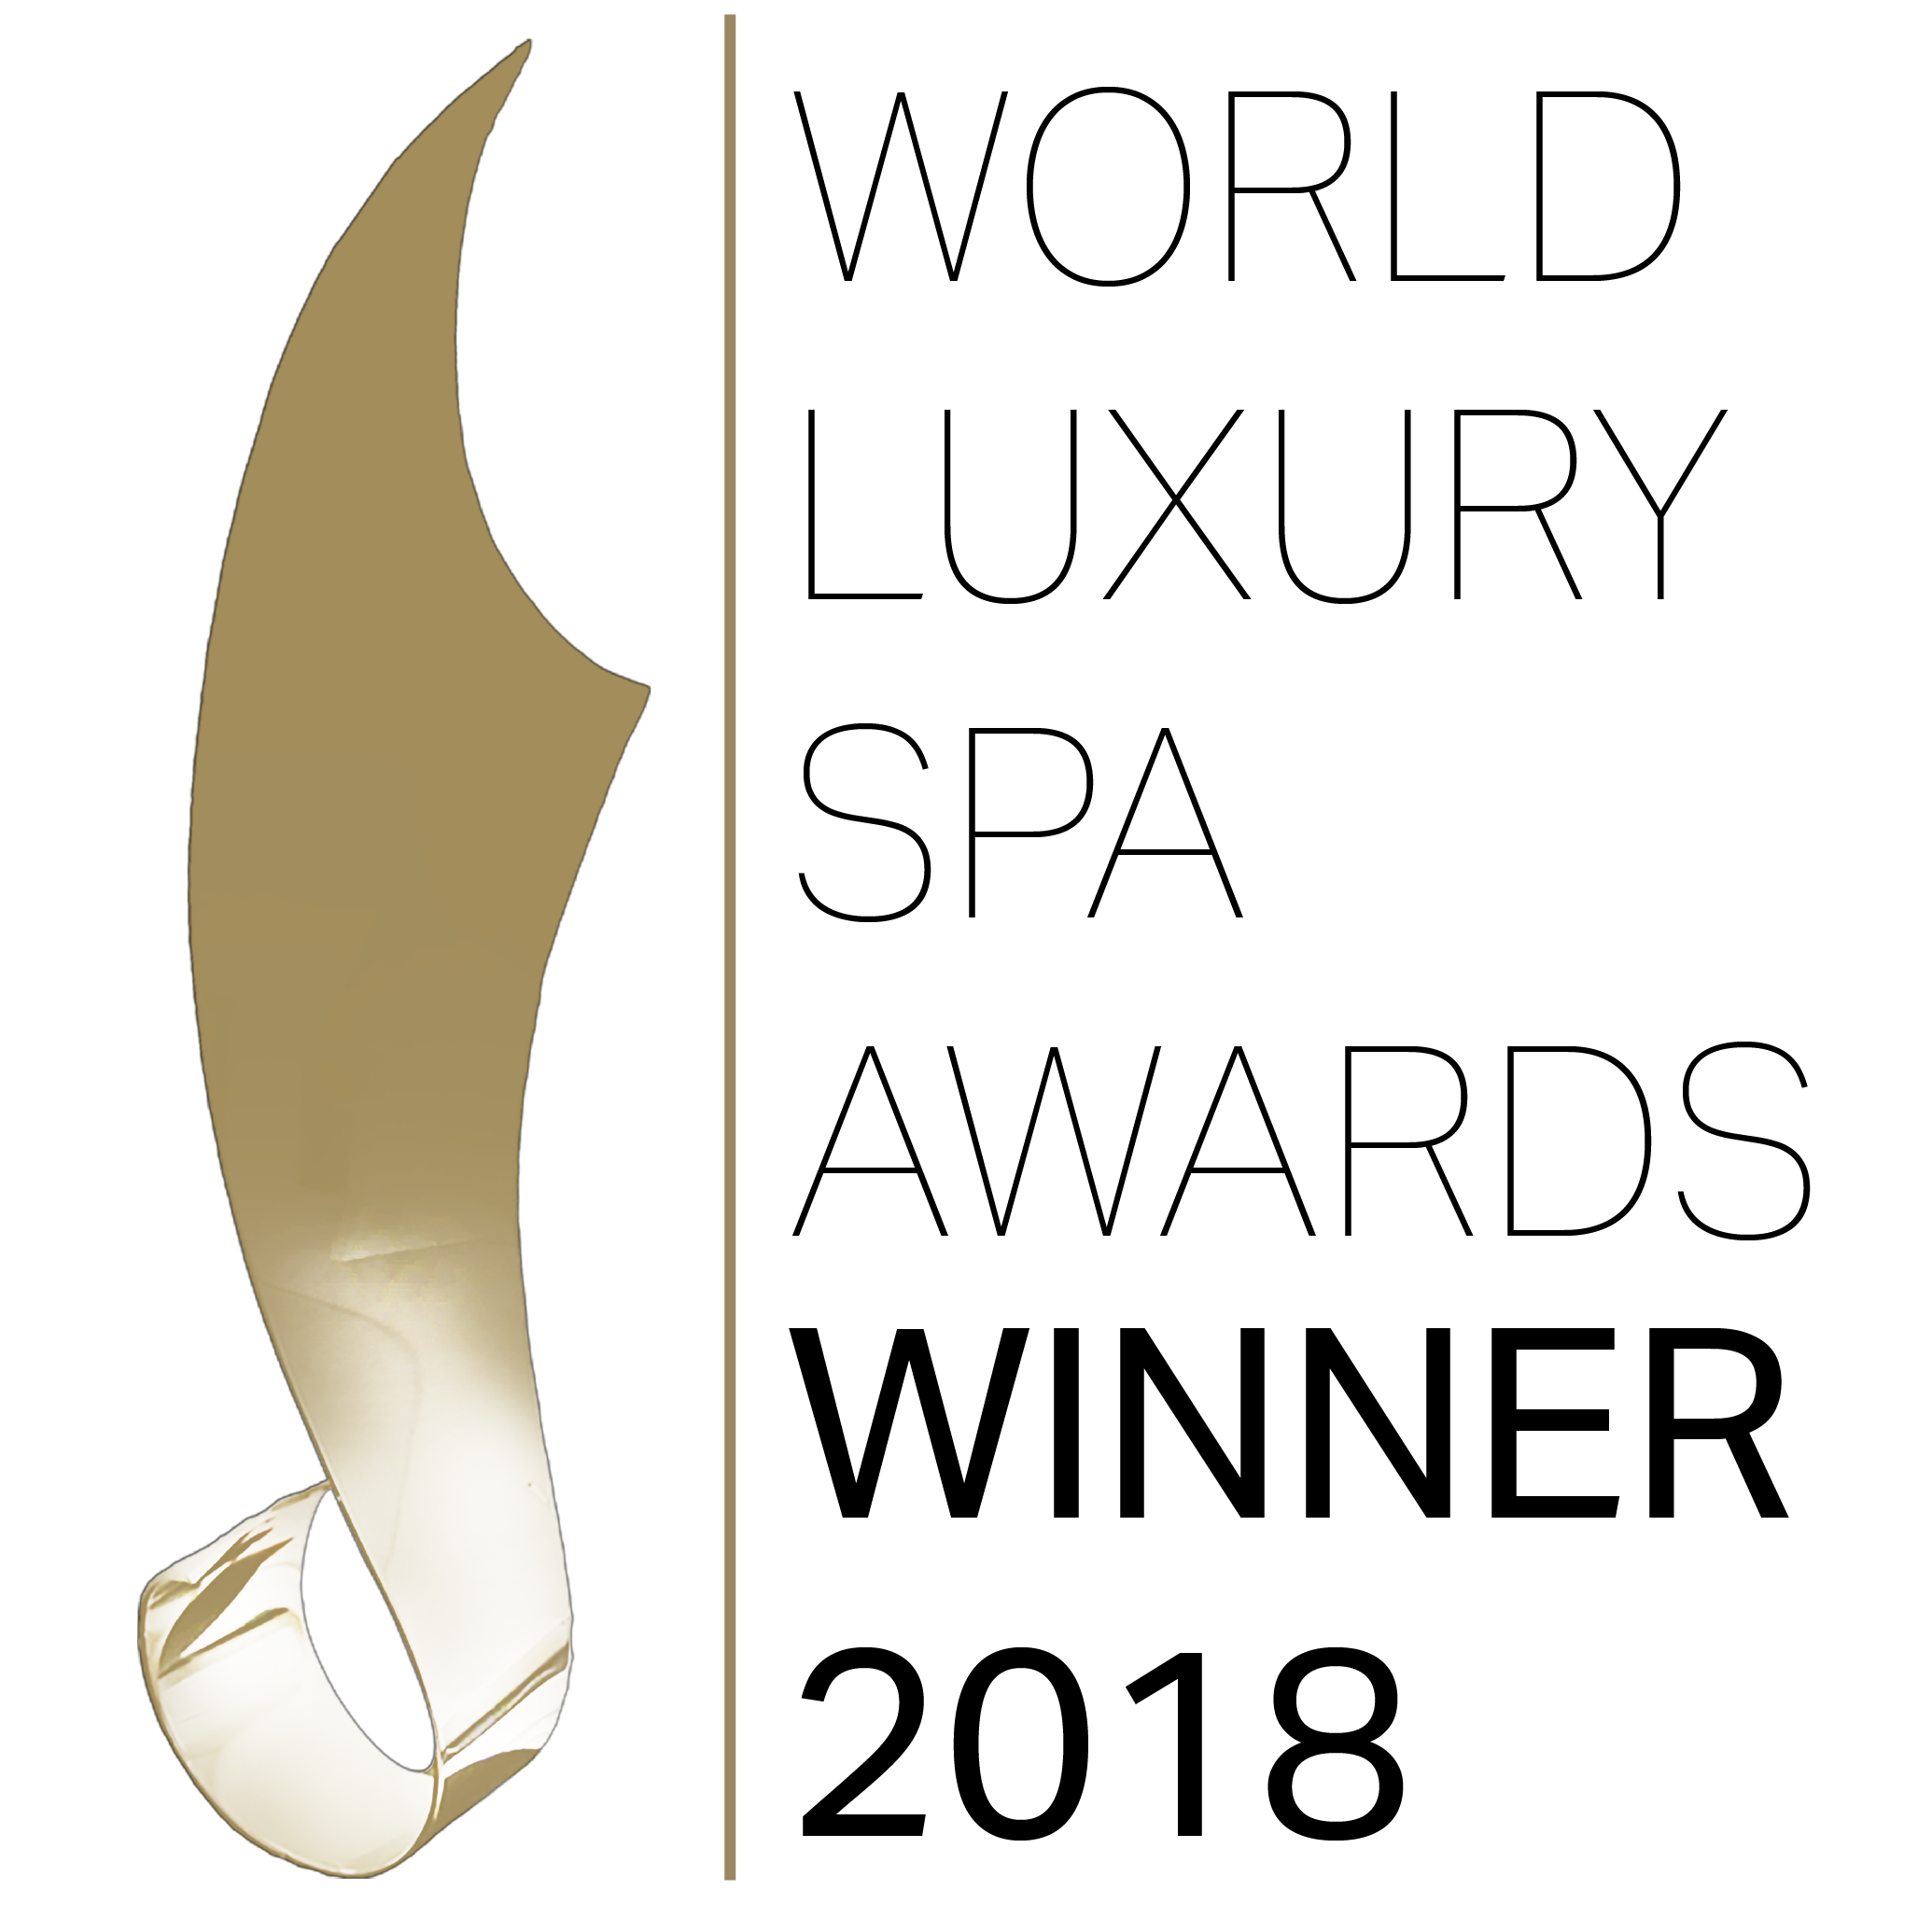 World Luxury Spa Awards - WINNER 2018 + 2019